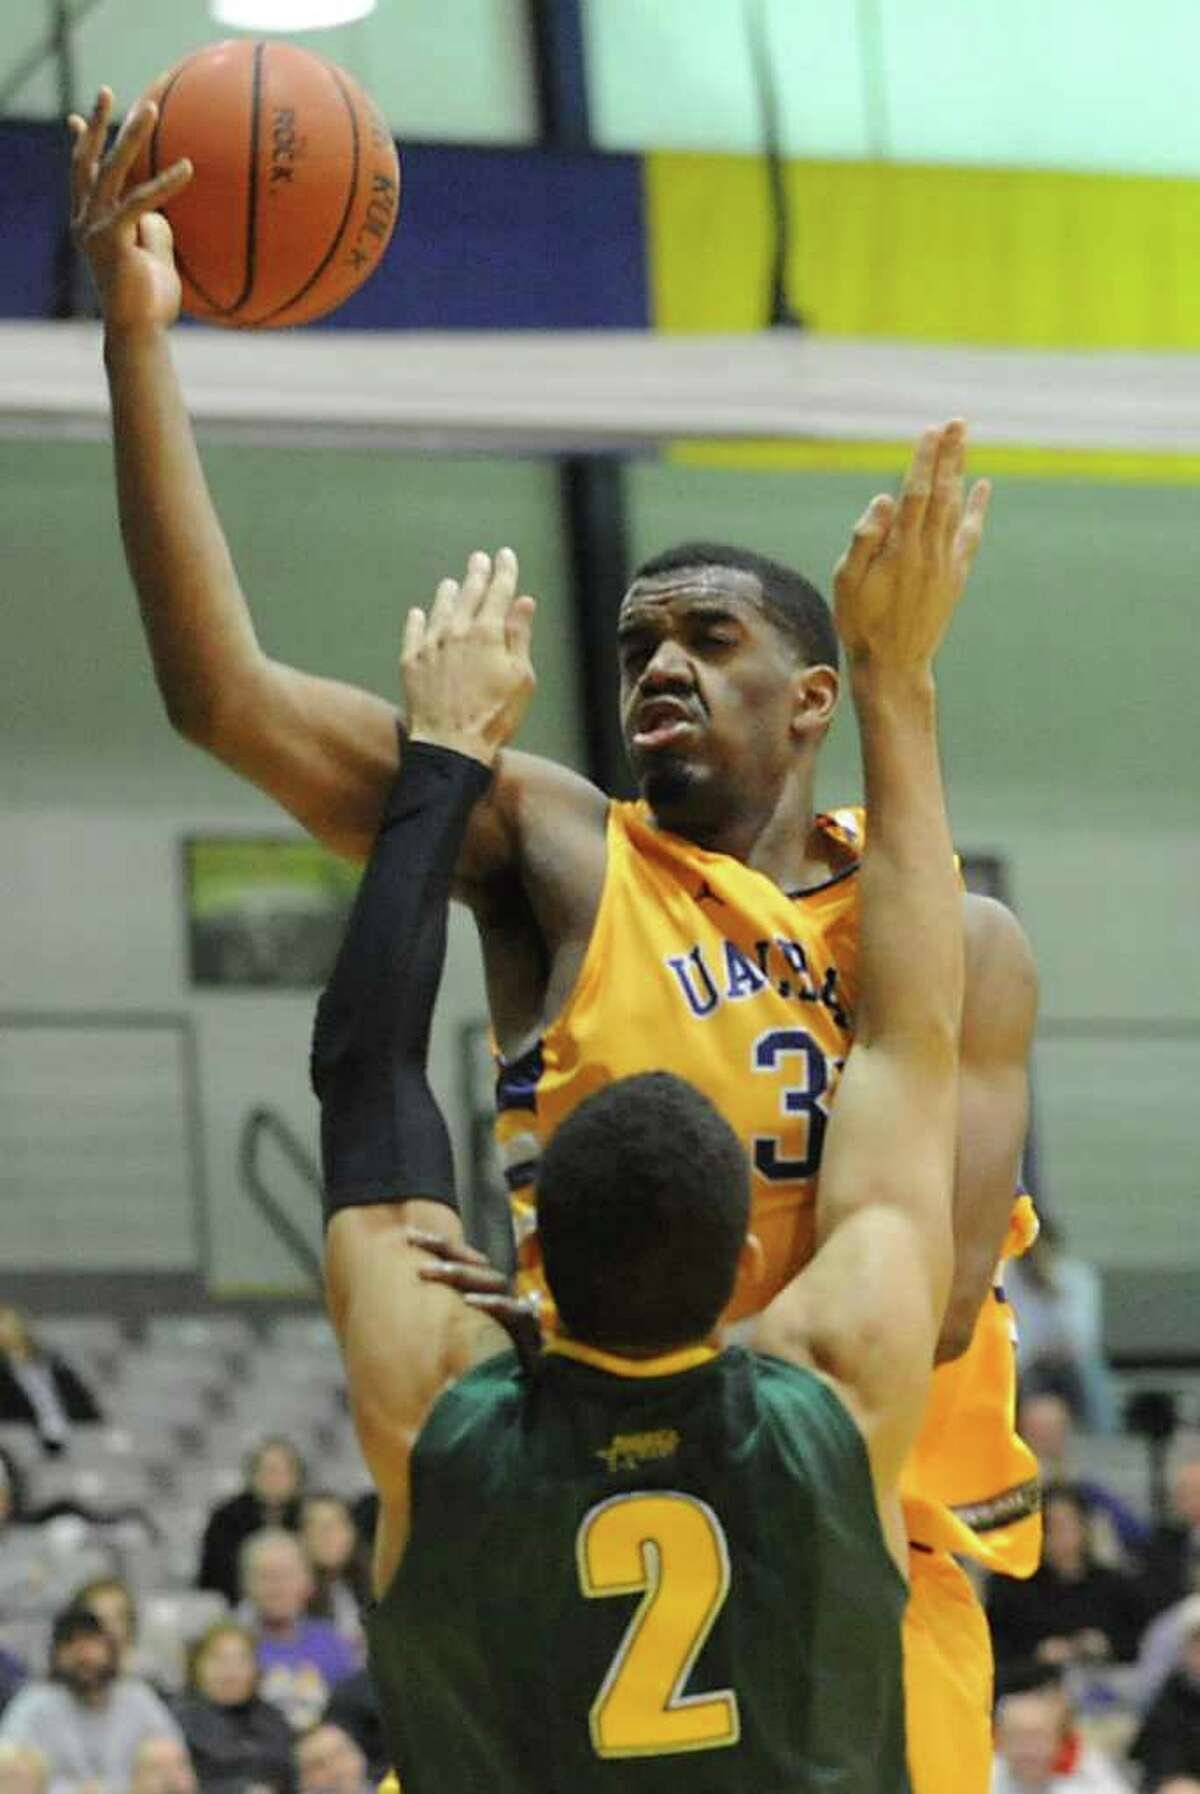 UAlbany's Jayson Guerrier is guarded by Luke Apfeld of Vermont as he drives to the basket during a basketball game at SEFCU arena on Wednesday, Feb. 15, 2012 in Albany, N.Y. (Lori Van Buren / Times Union)